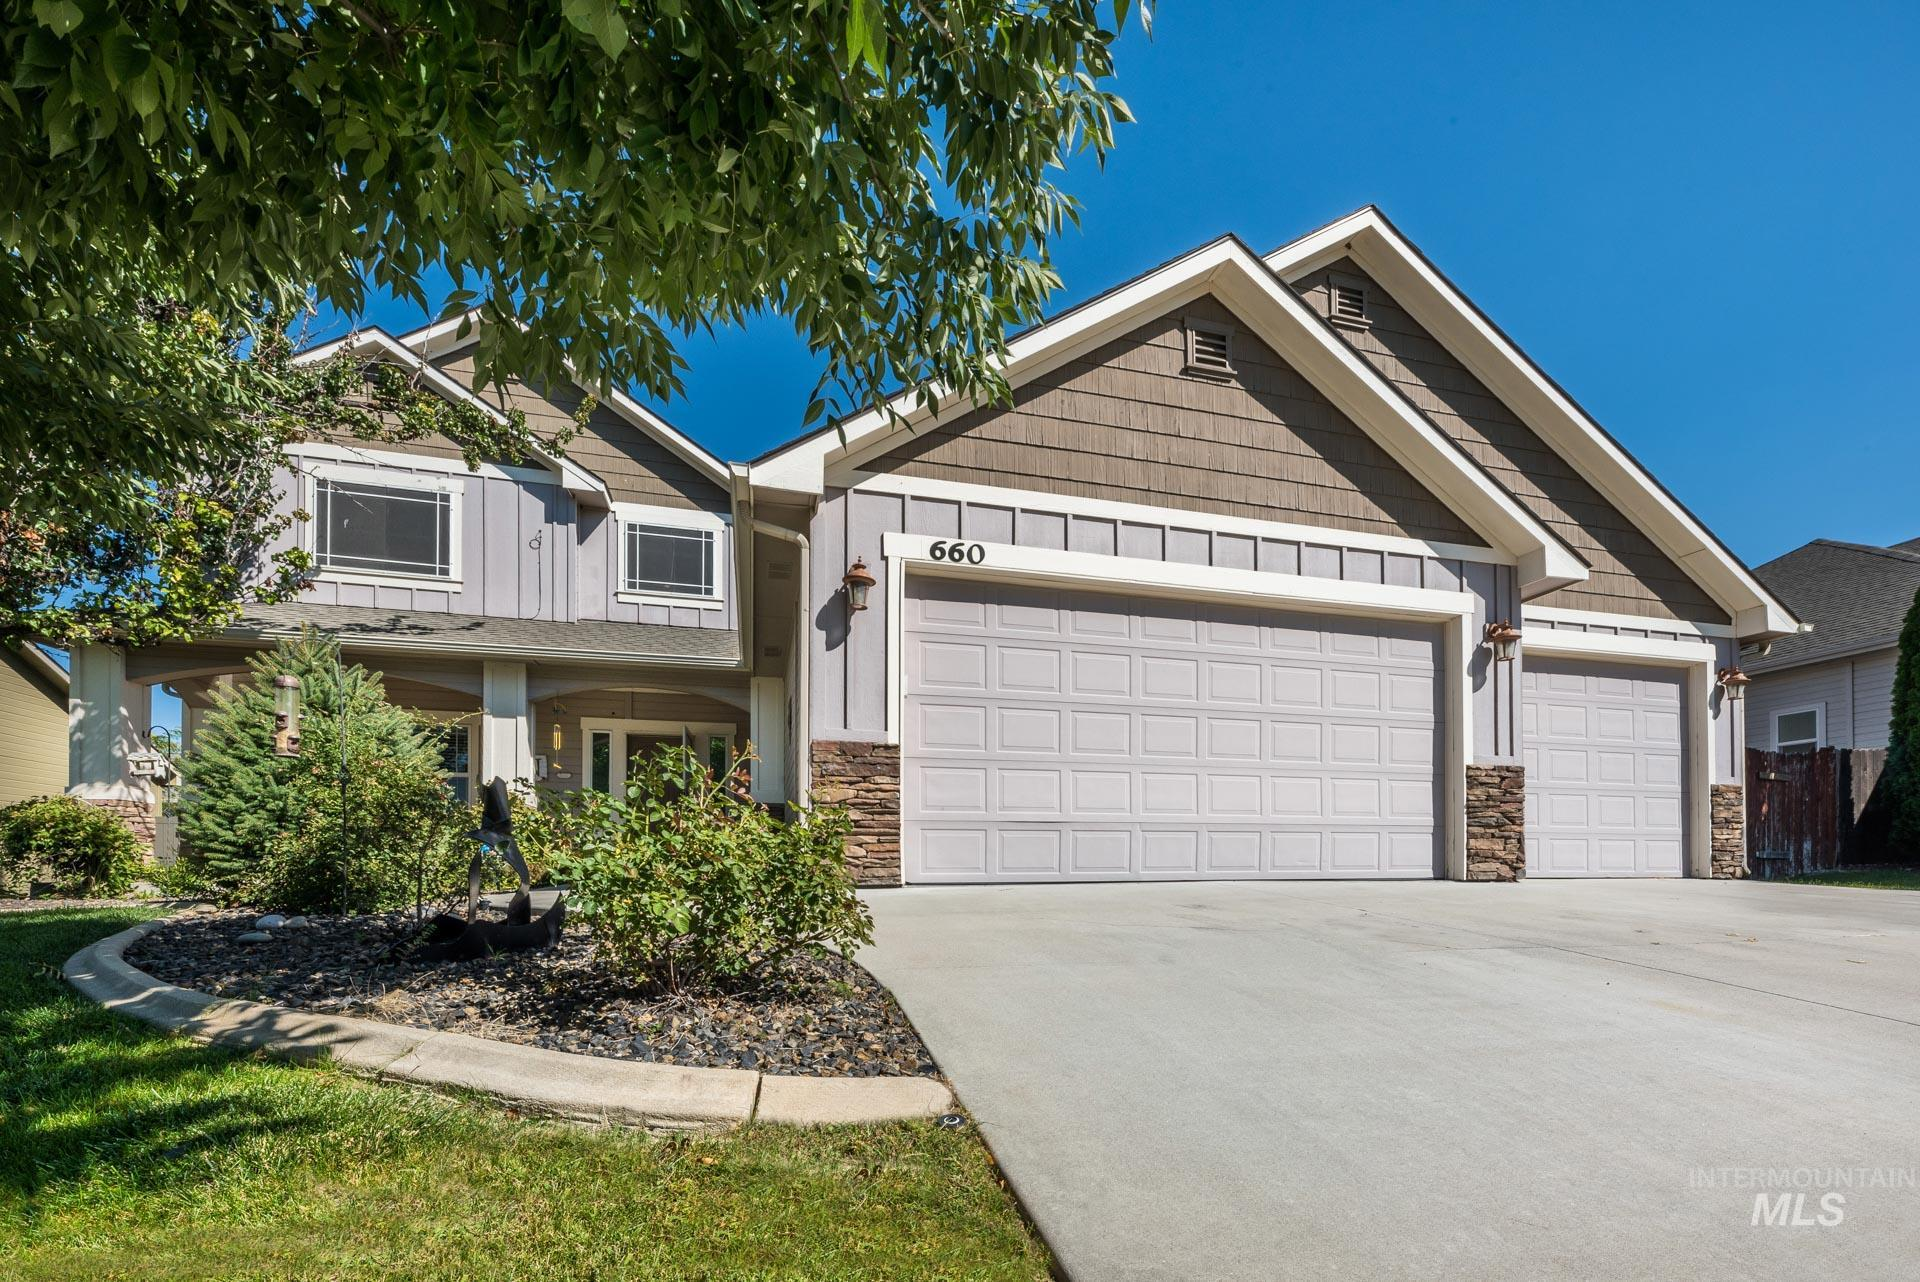 Photo for 660 S Whitehorse Ave., Kuna, ID 83634 (MLS # 98779883)